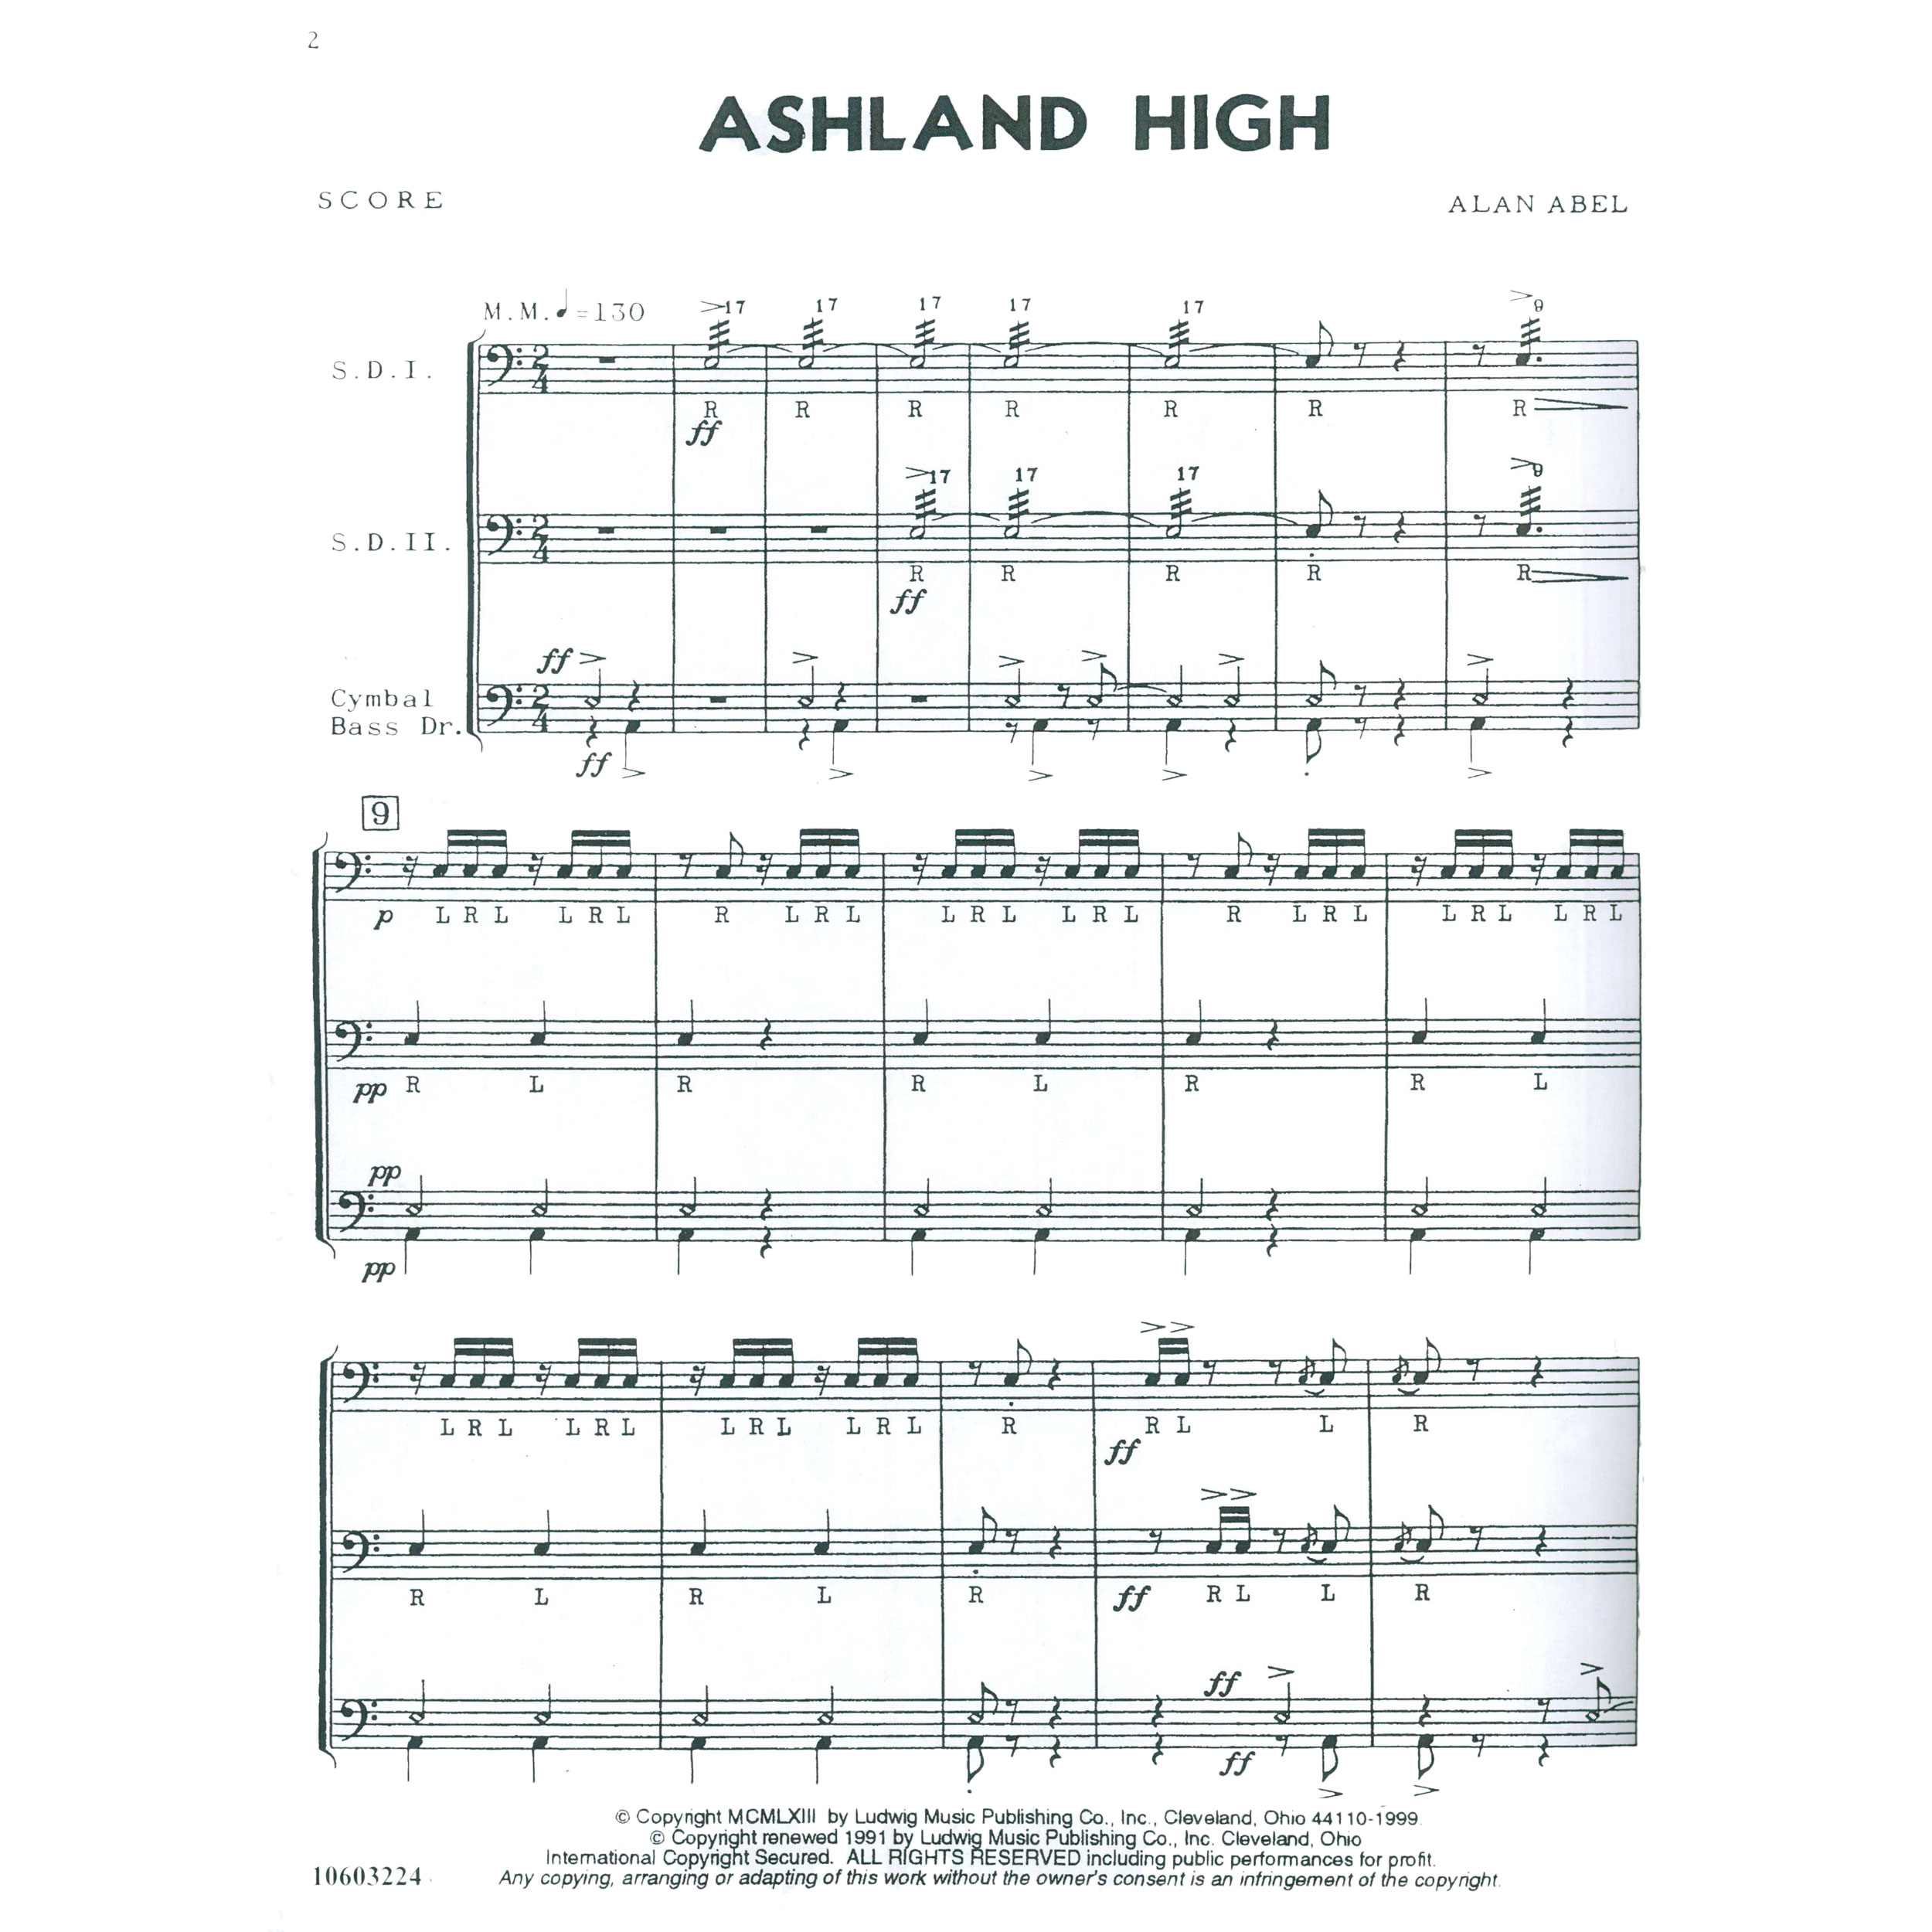 Ashland High by Alan Abel | Cadence (Ludwig Masters Music)